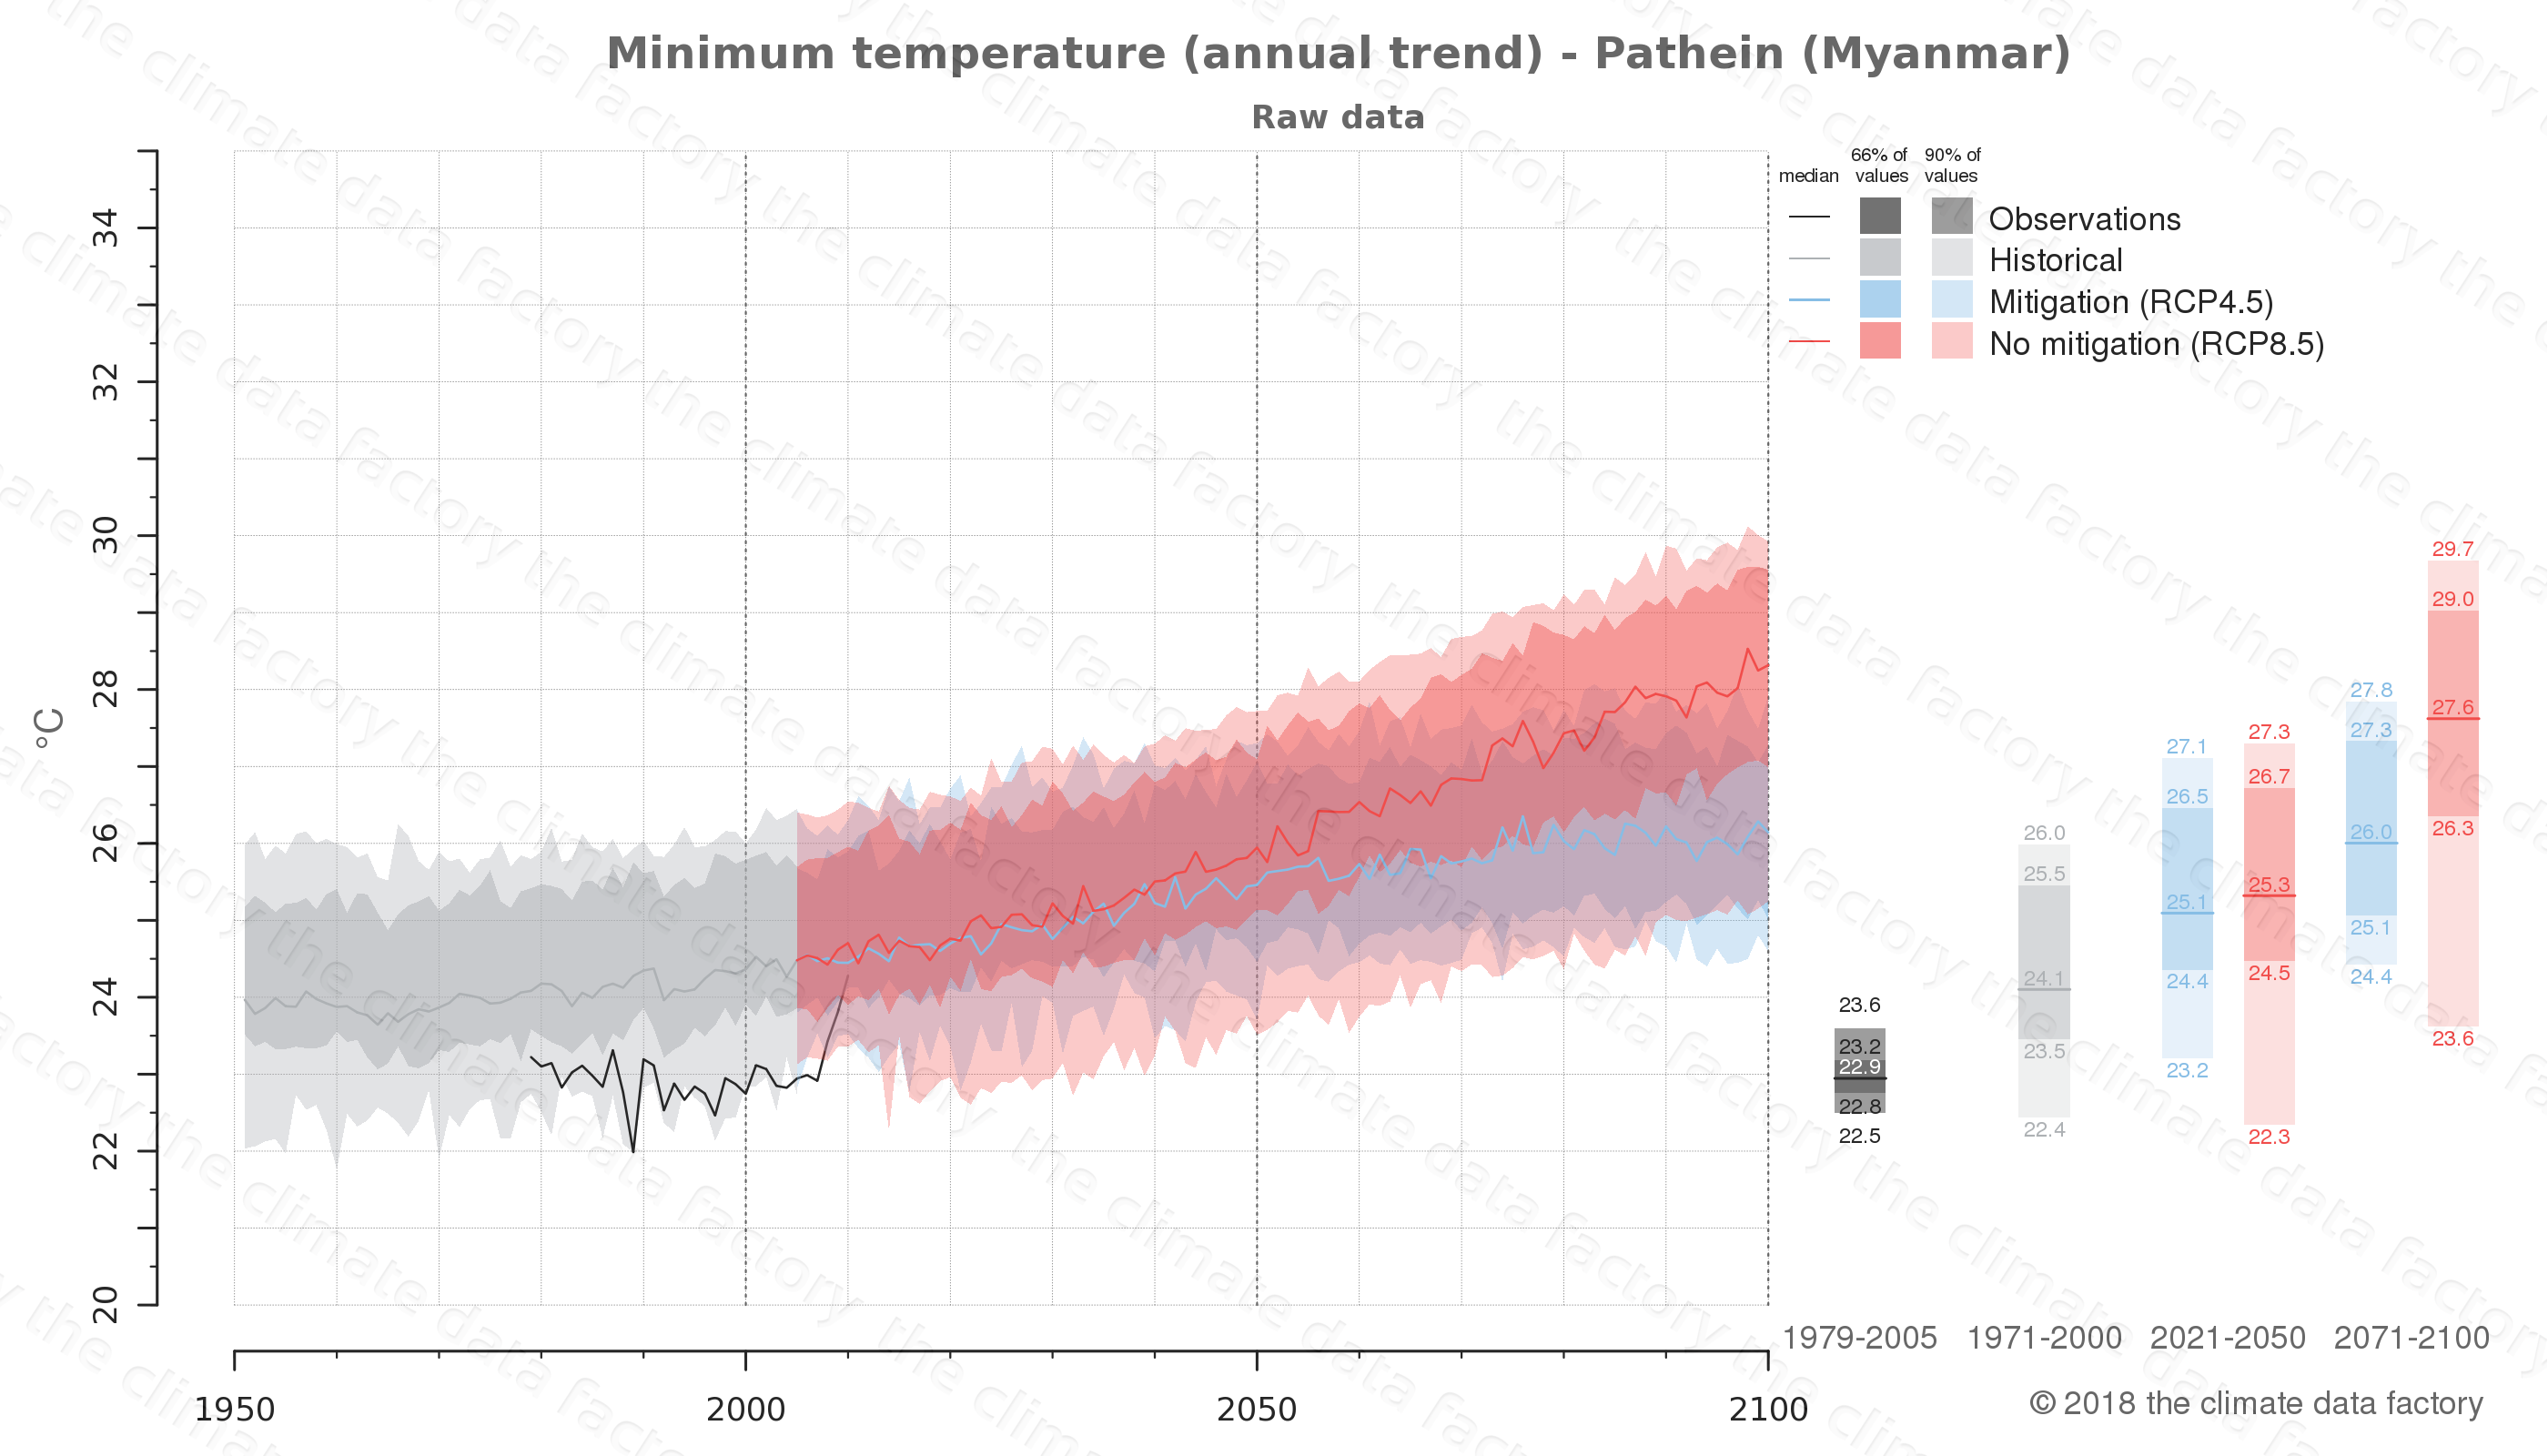 climate change data policy adaptation climate graph city data minimum-temperature pathein myanmar